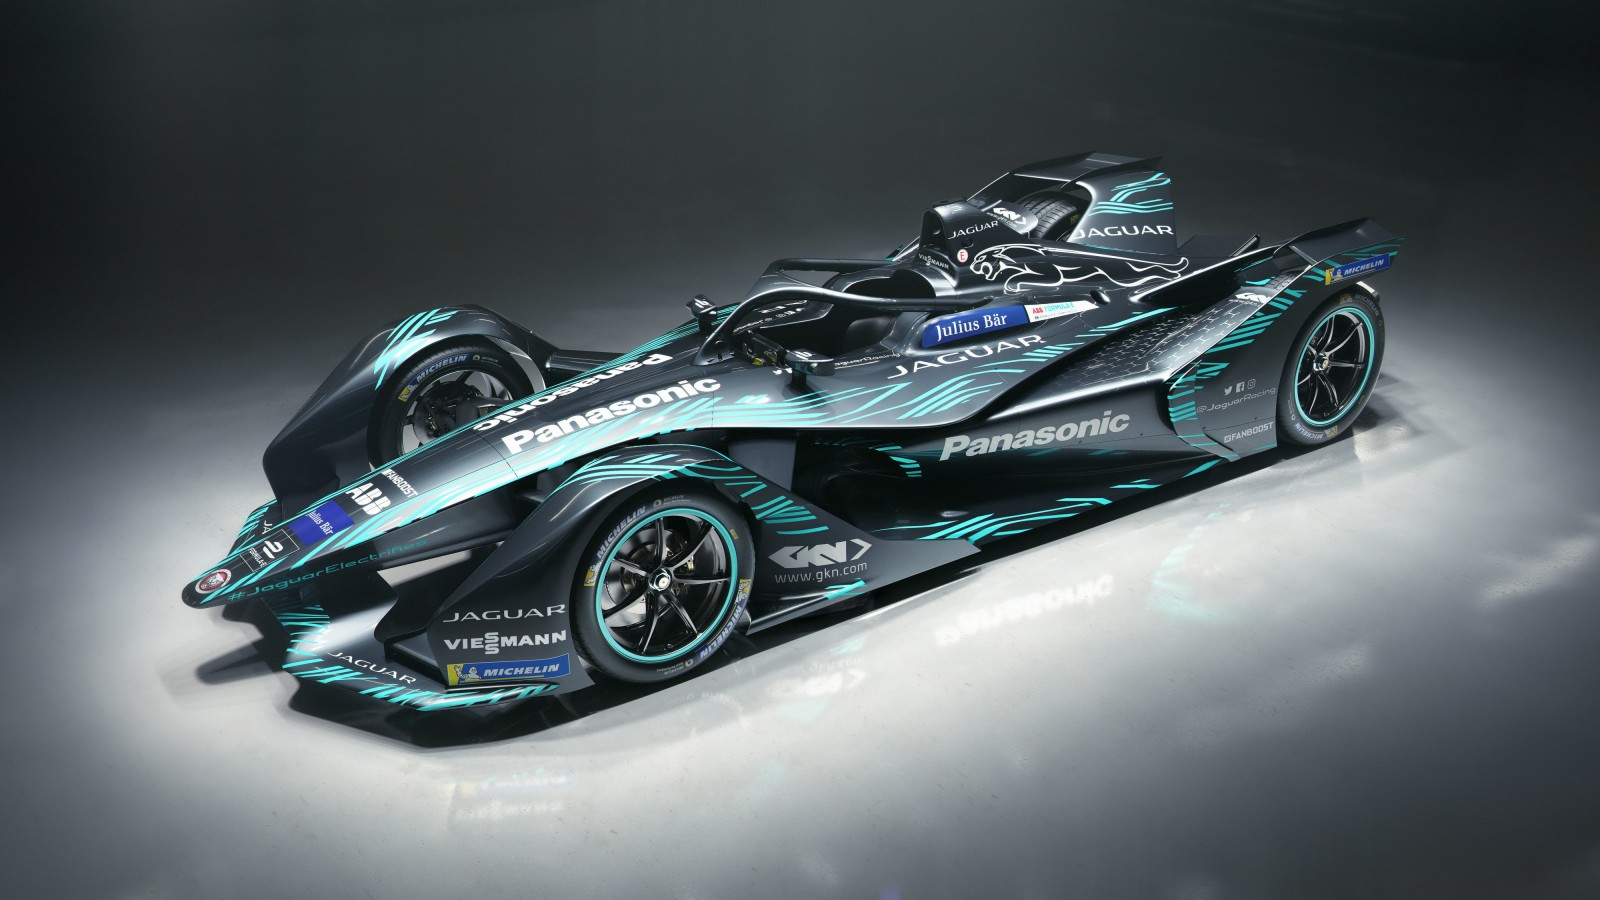 2018 Jaguar I Type Electric Formula E Car 4K Wallpaper